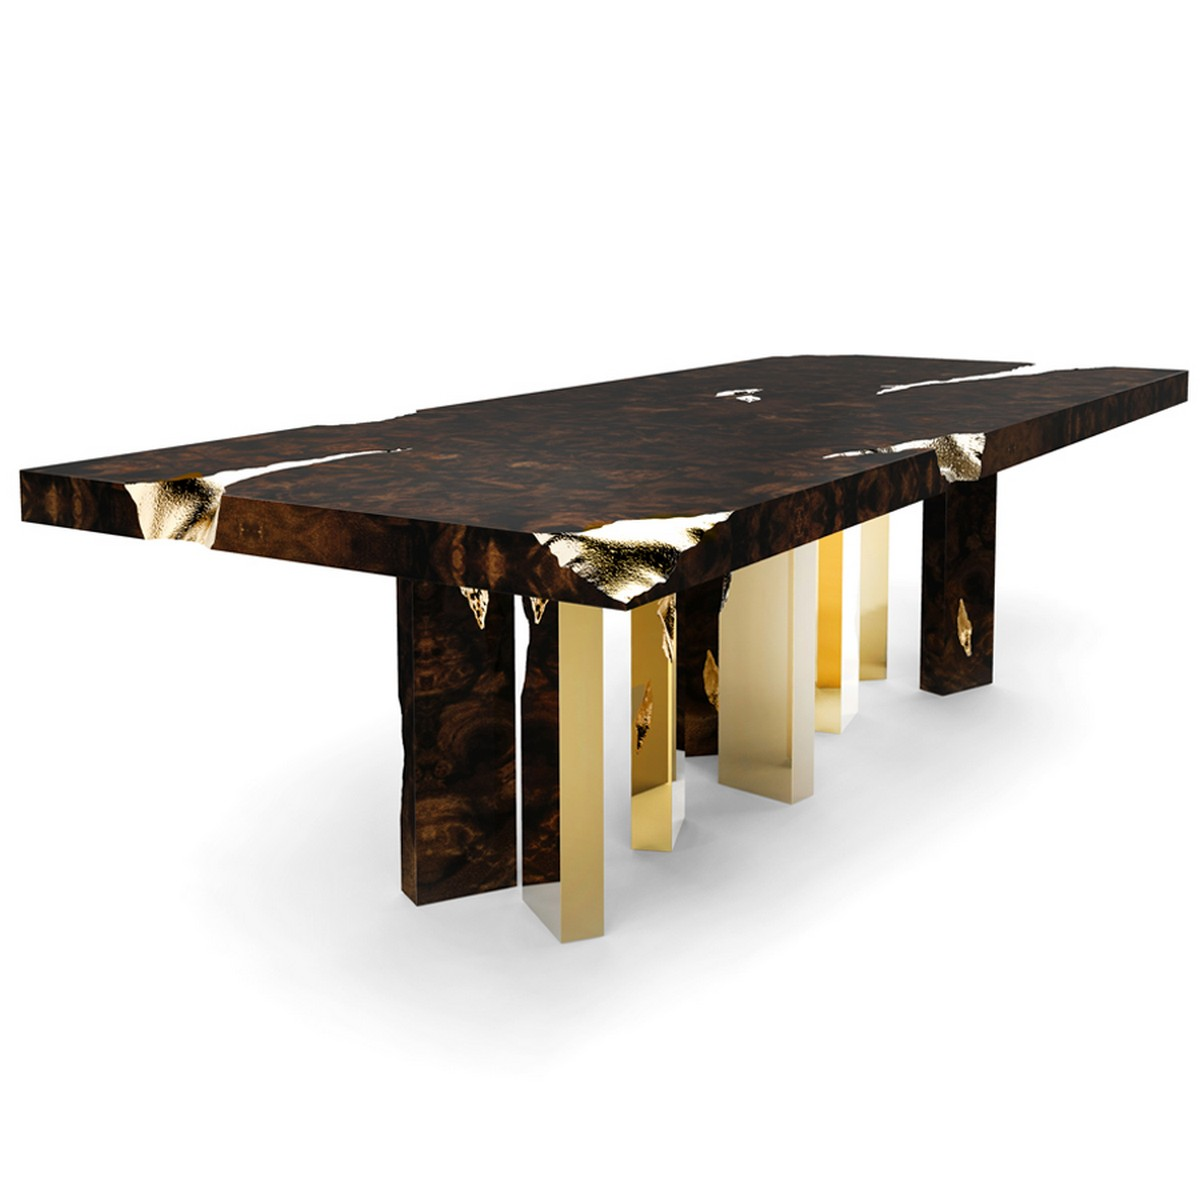 Modern Dining Tables Inspired by History modern dining tables Modern Dining Tables Inspired by History empire2